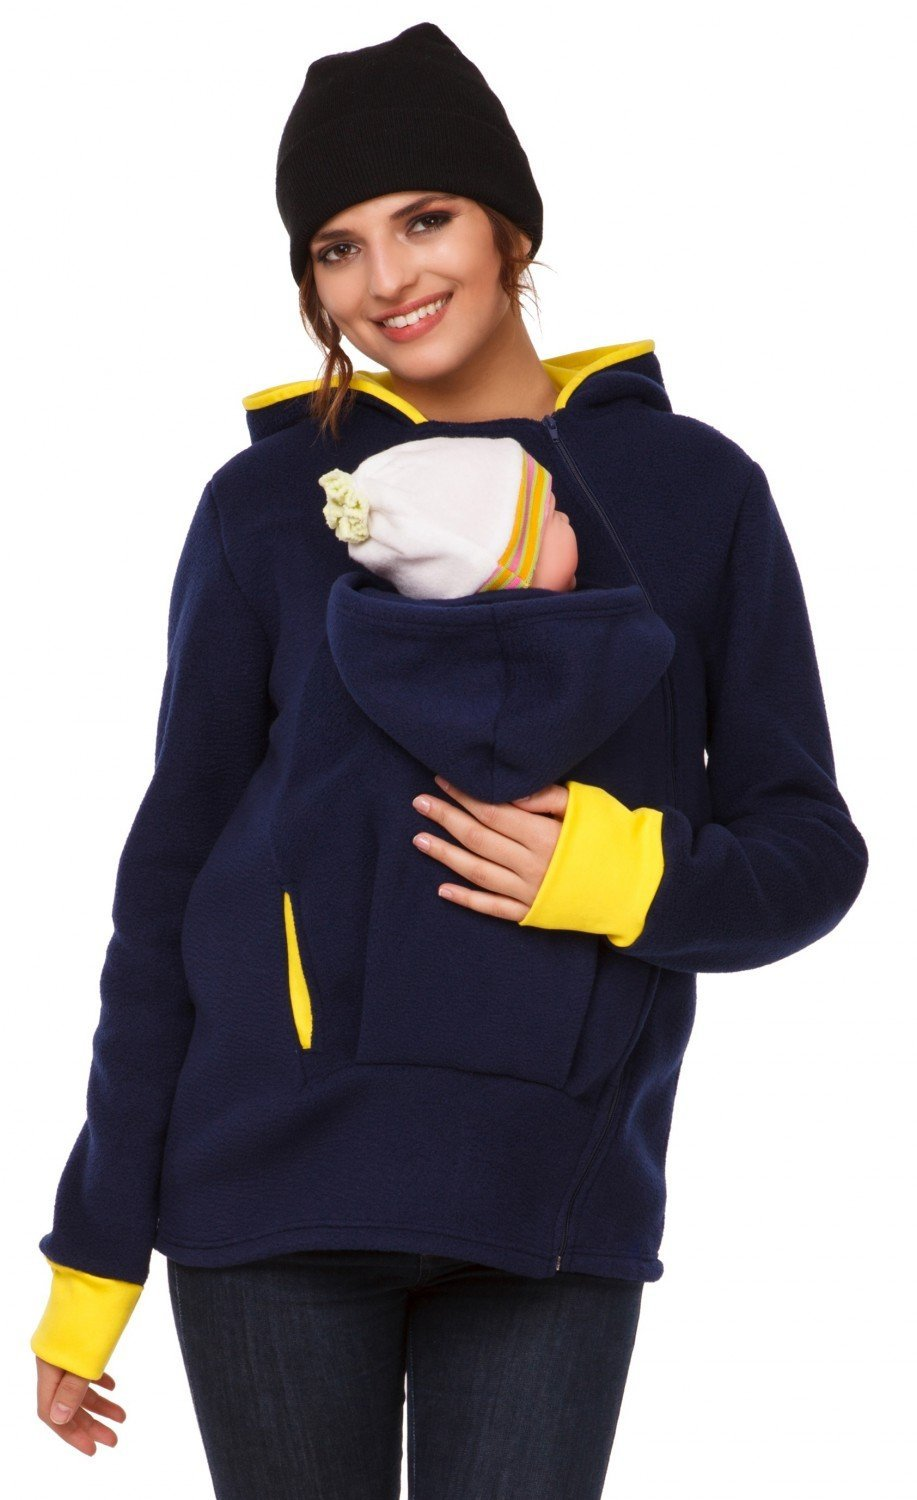 Happy Mama. Women's Maternity Fleece Hoodie Duo Top Carrier Baby Holder. 032p carrierhood_032